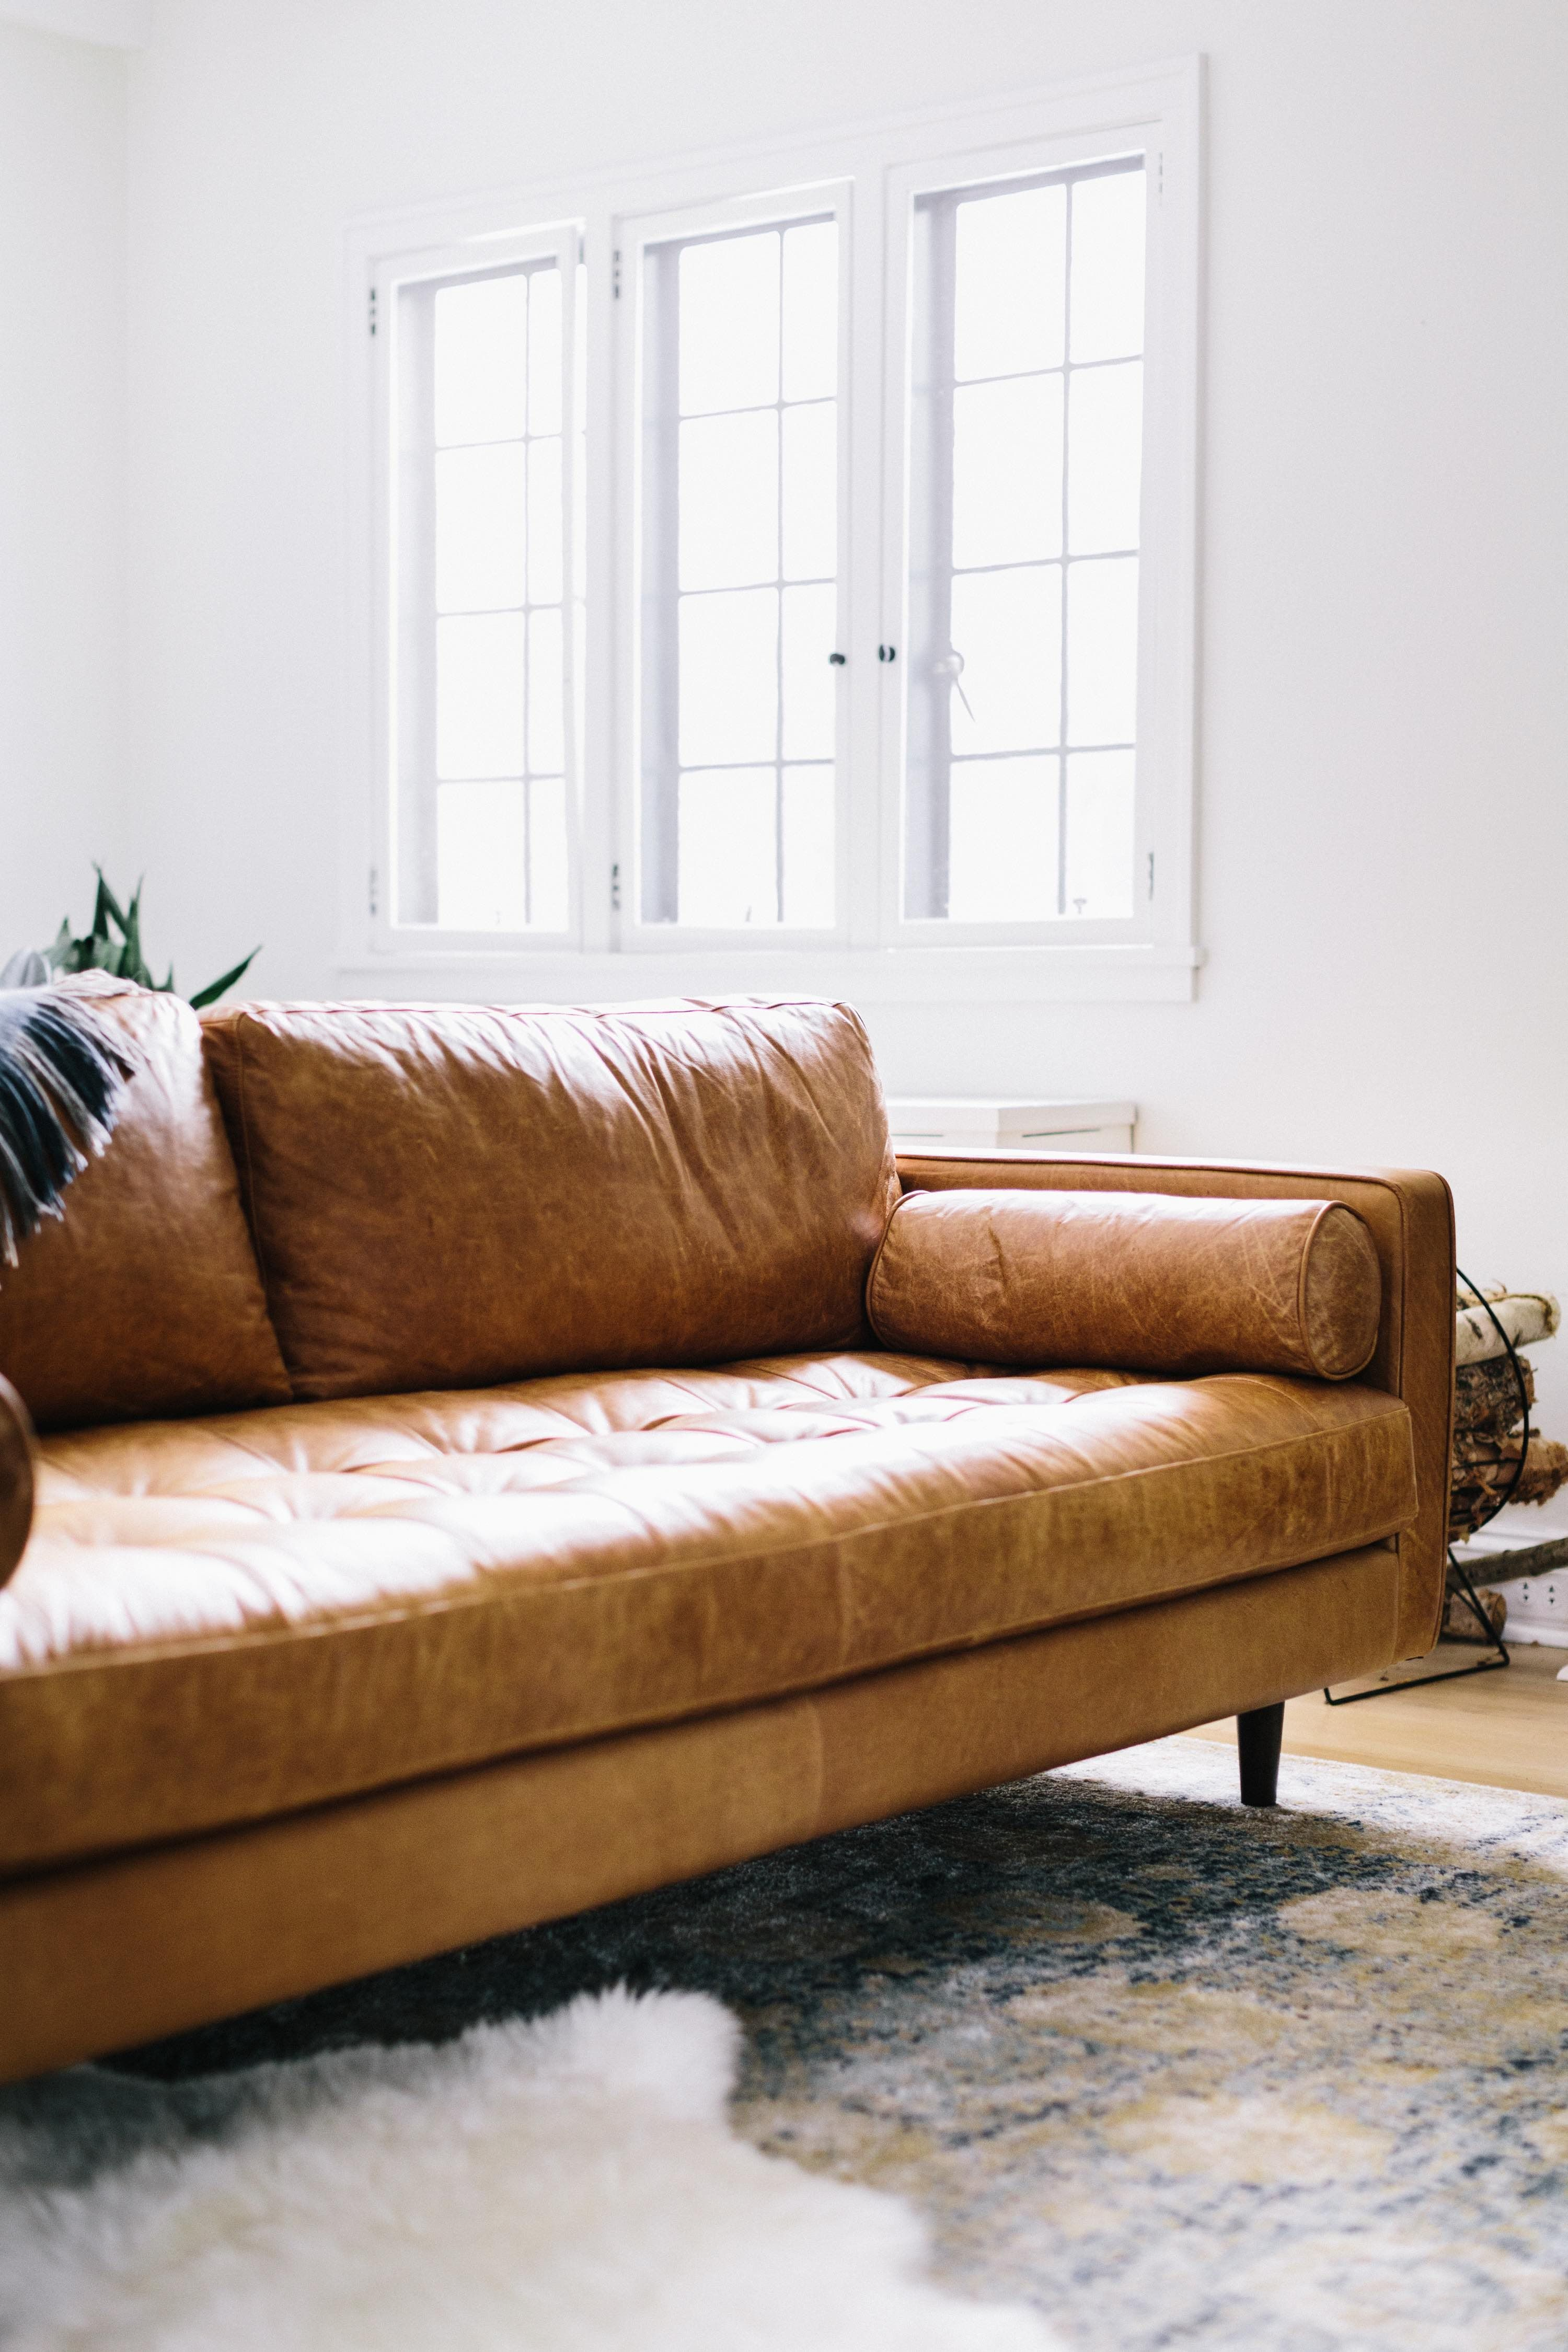 Light Tan Leather Sofa It Is Necessary To Understand The Constraints For Where You Wish Place Not All Couches Wi